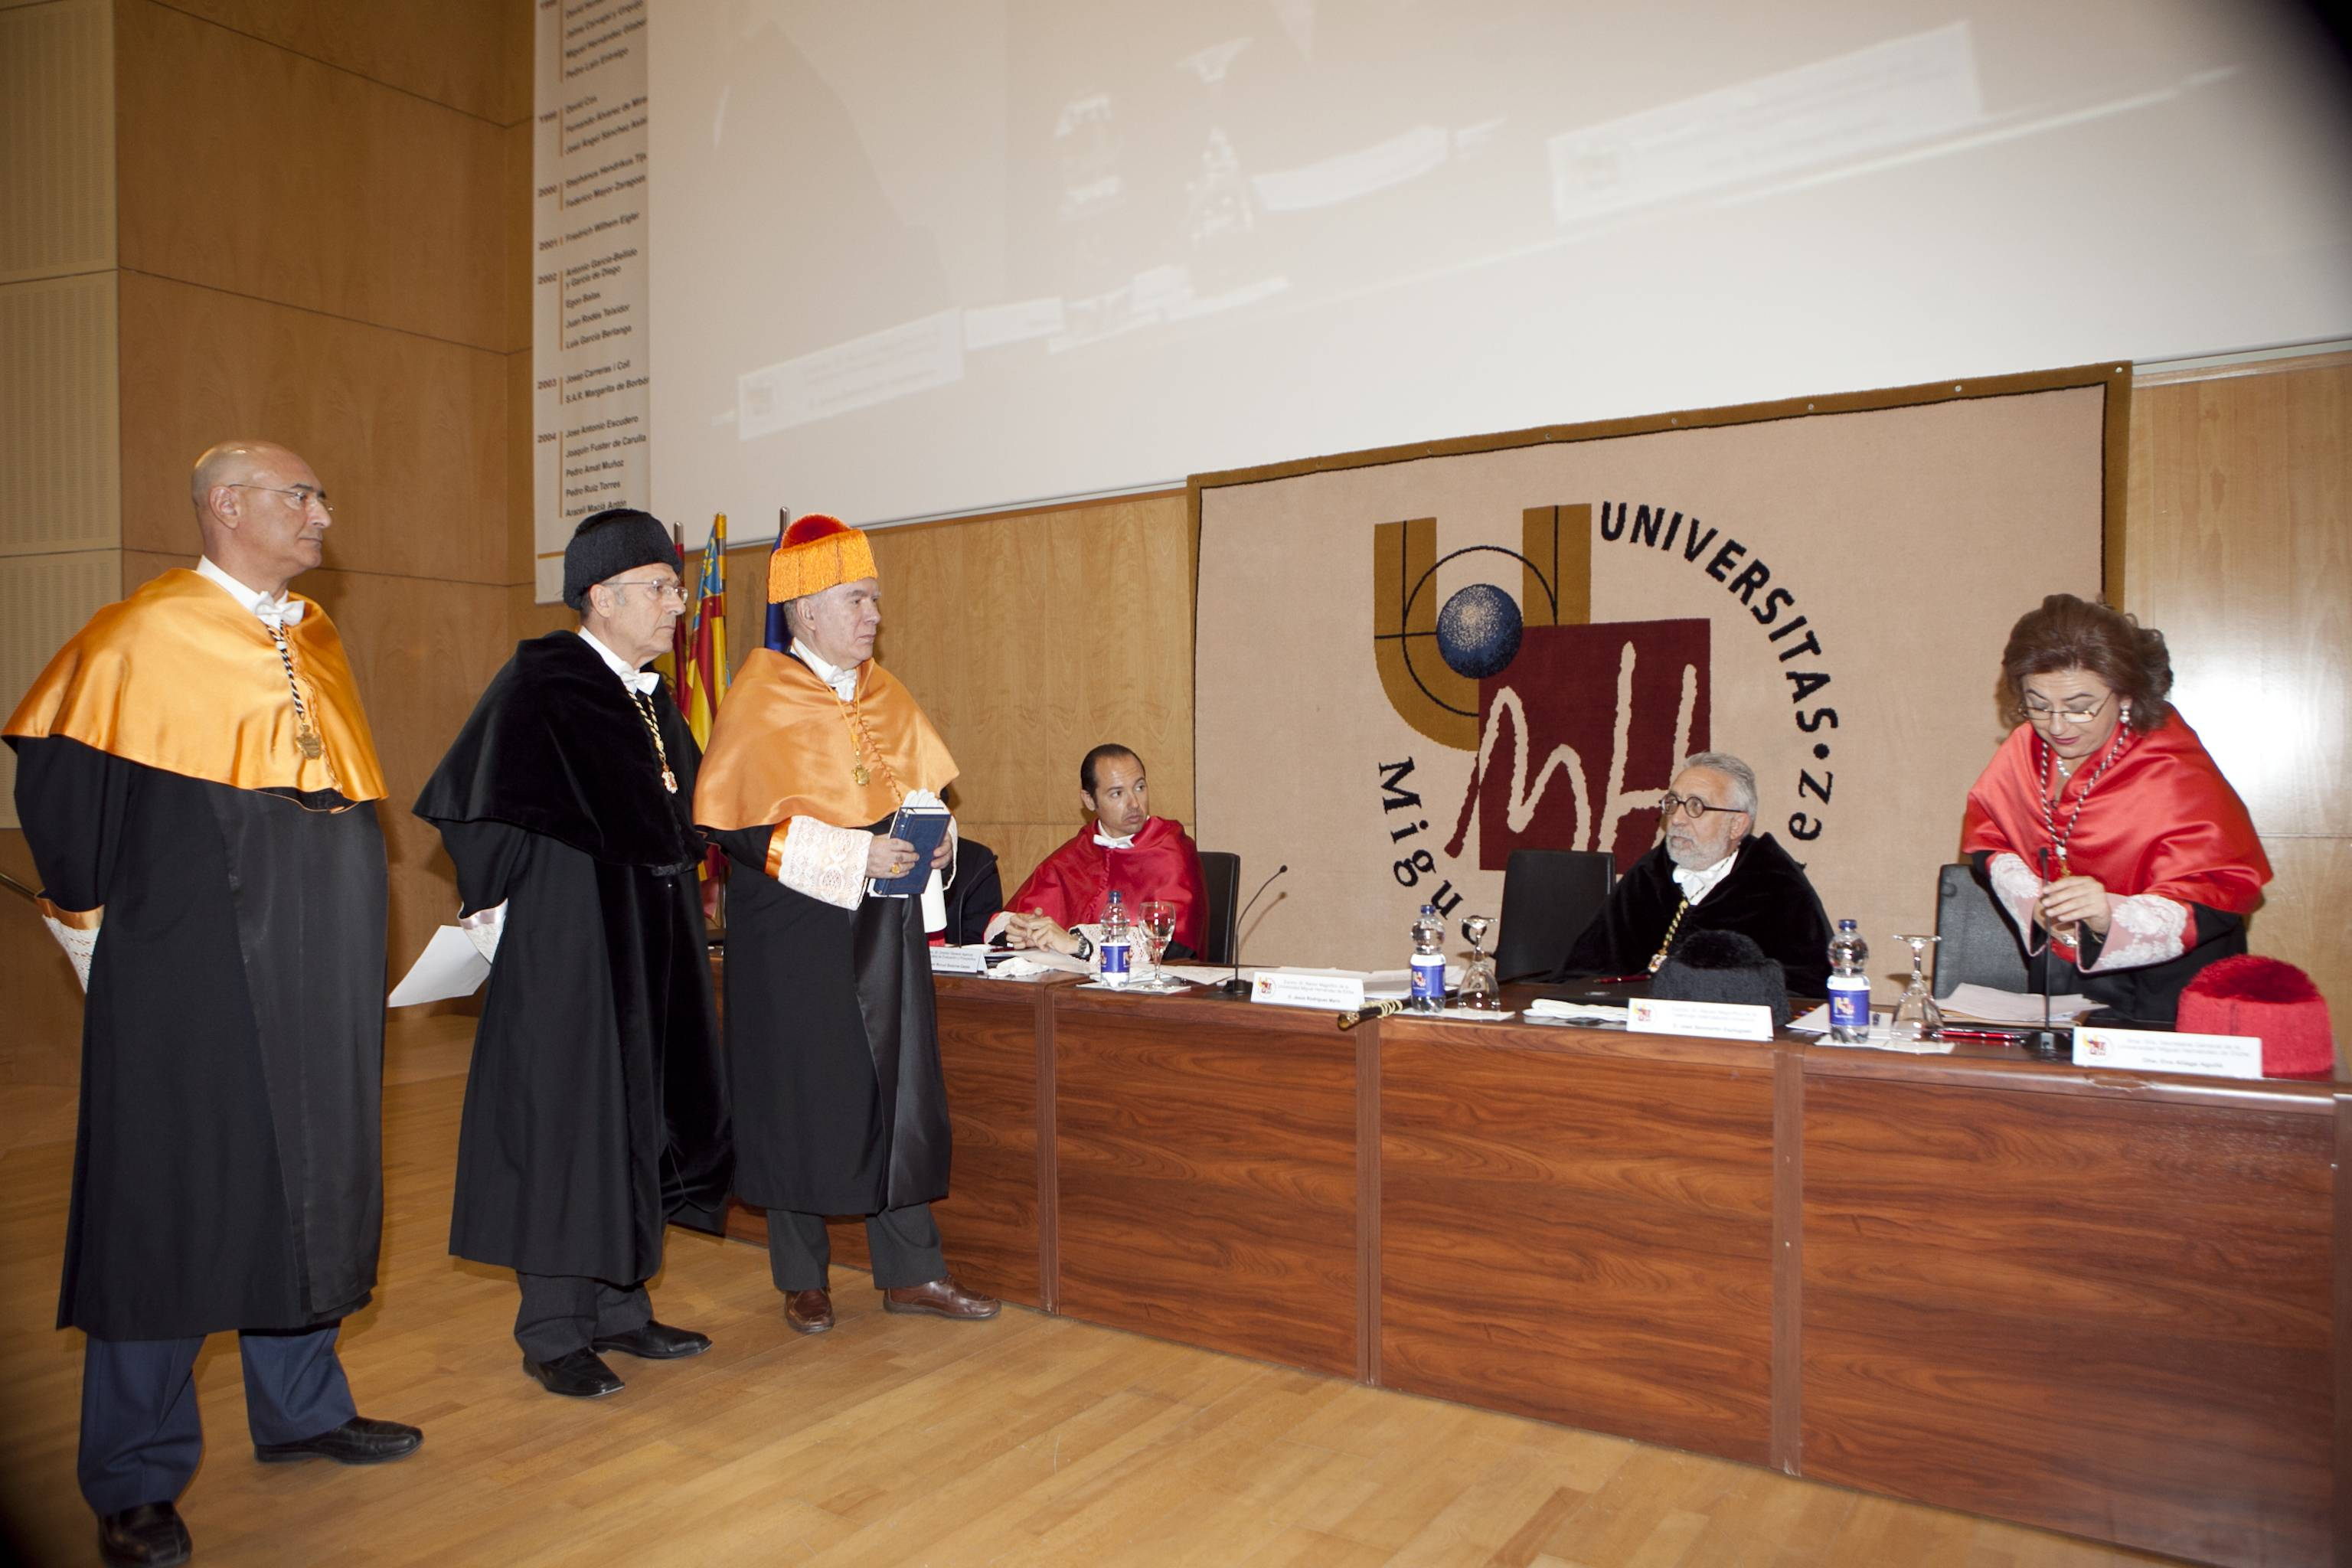 doctor-honoris-causa-luis-gamir_mg_0781.jpg